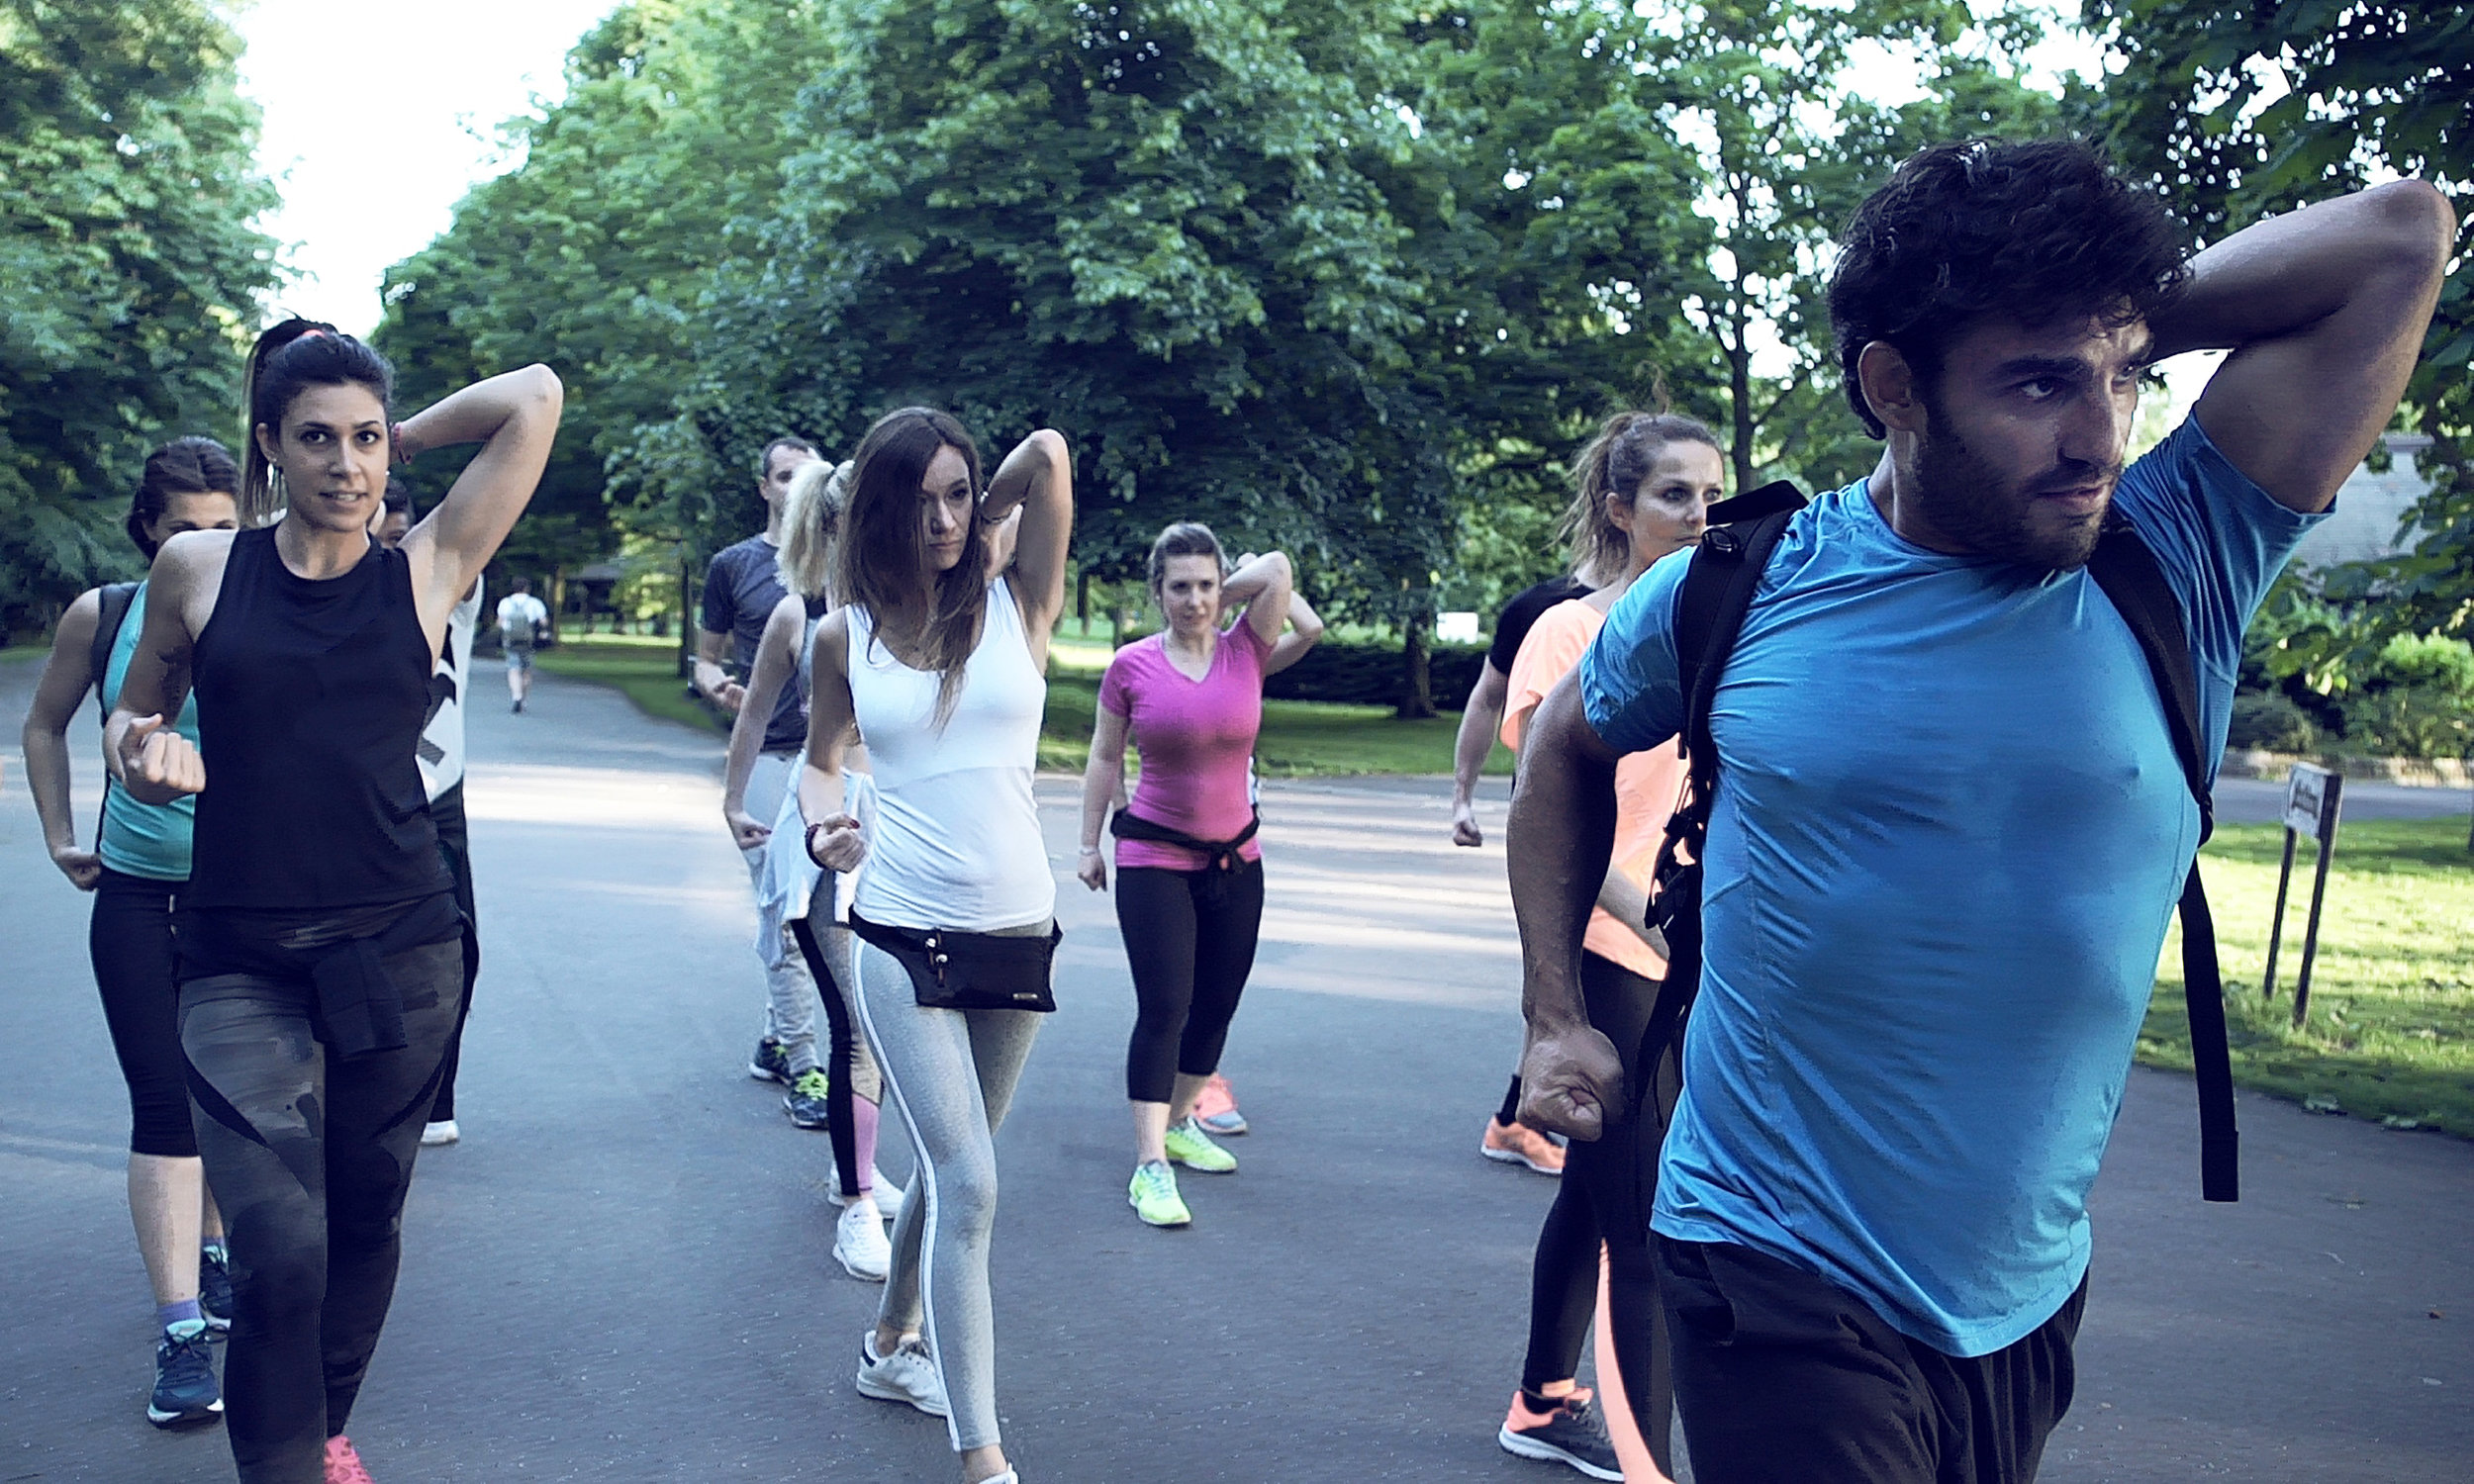 POWER WALK ESCAPES   Power walking is extremely beneficial for our body without damaging our joints. Our power walk escapes explore different areas of London whilst doing a full body workout and group exercises all to the rhythm of music, that are adaptable to all fitness levels.